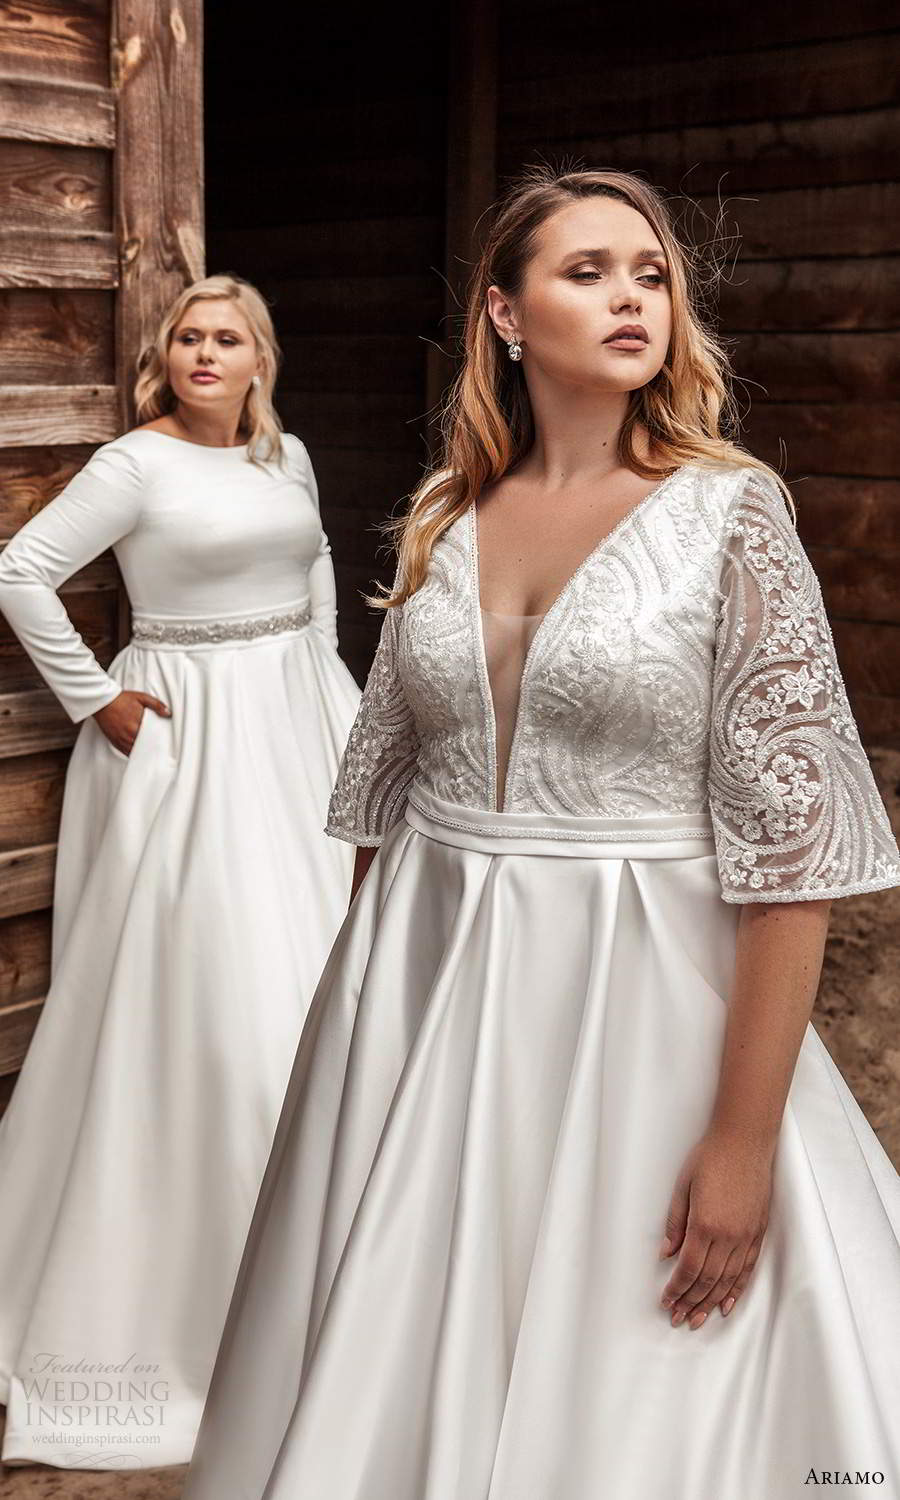 ariamo 2021 plus bridal half sleeves plunging v necklnie embellished bodice clean skirt a line ball gown wedding dress chapel train (5) fv